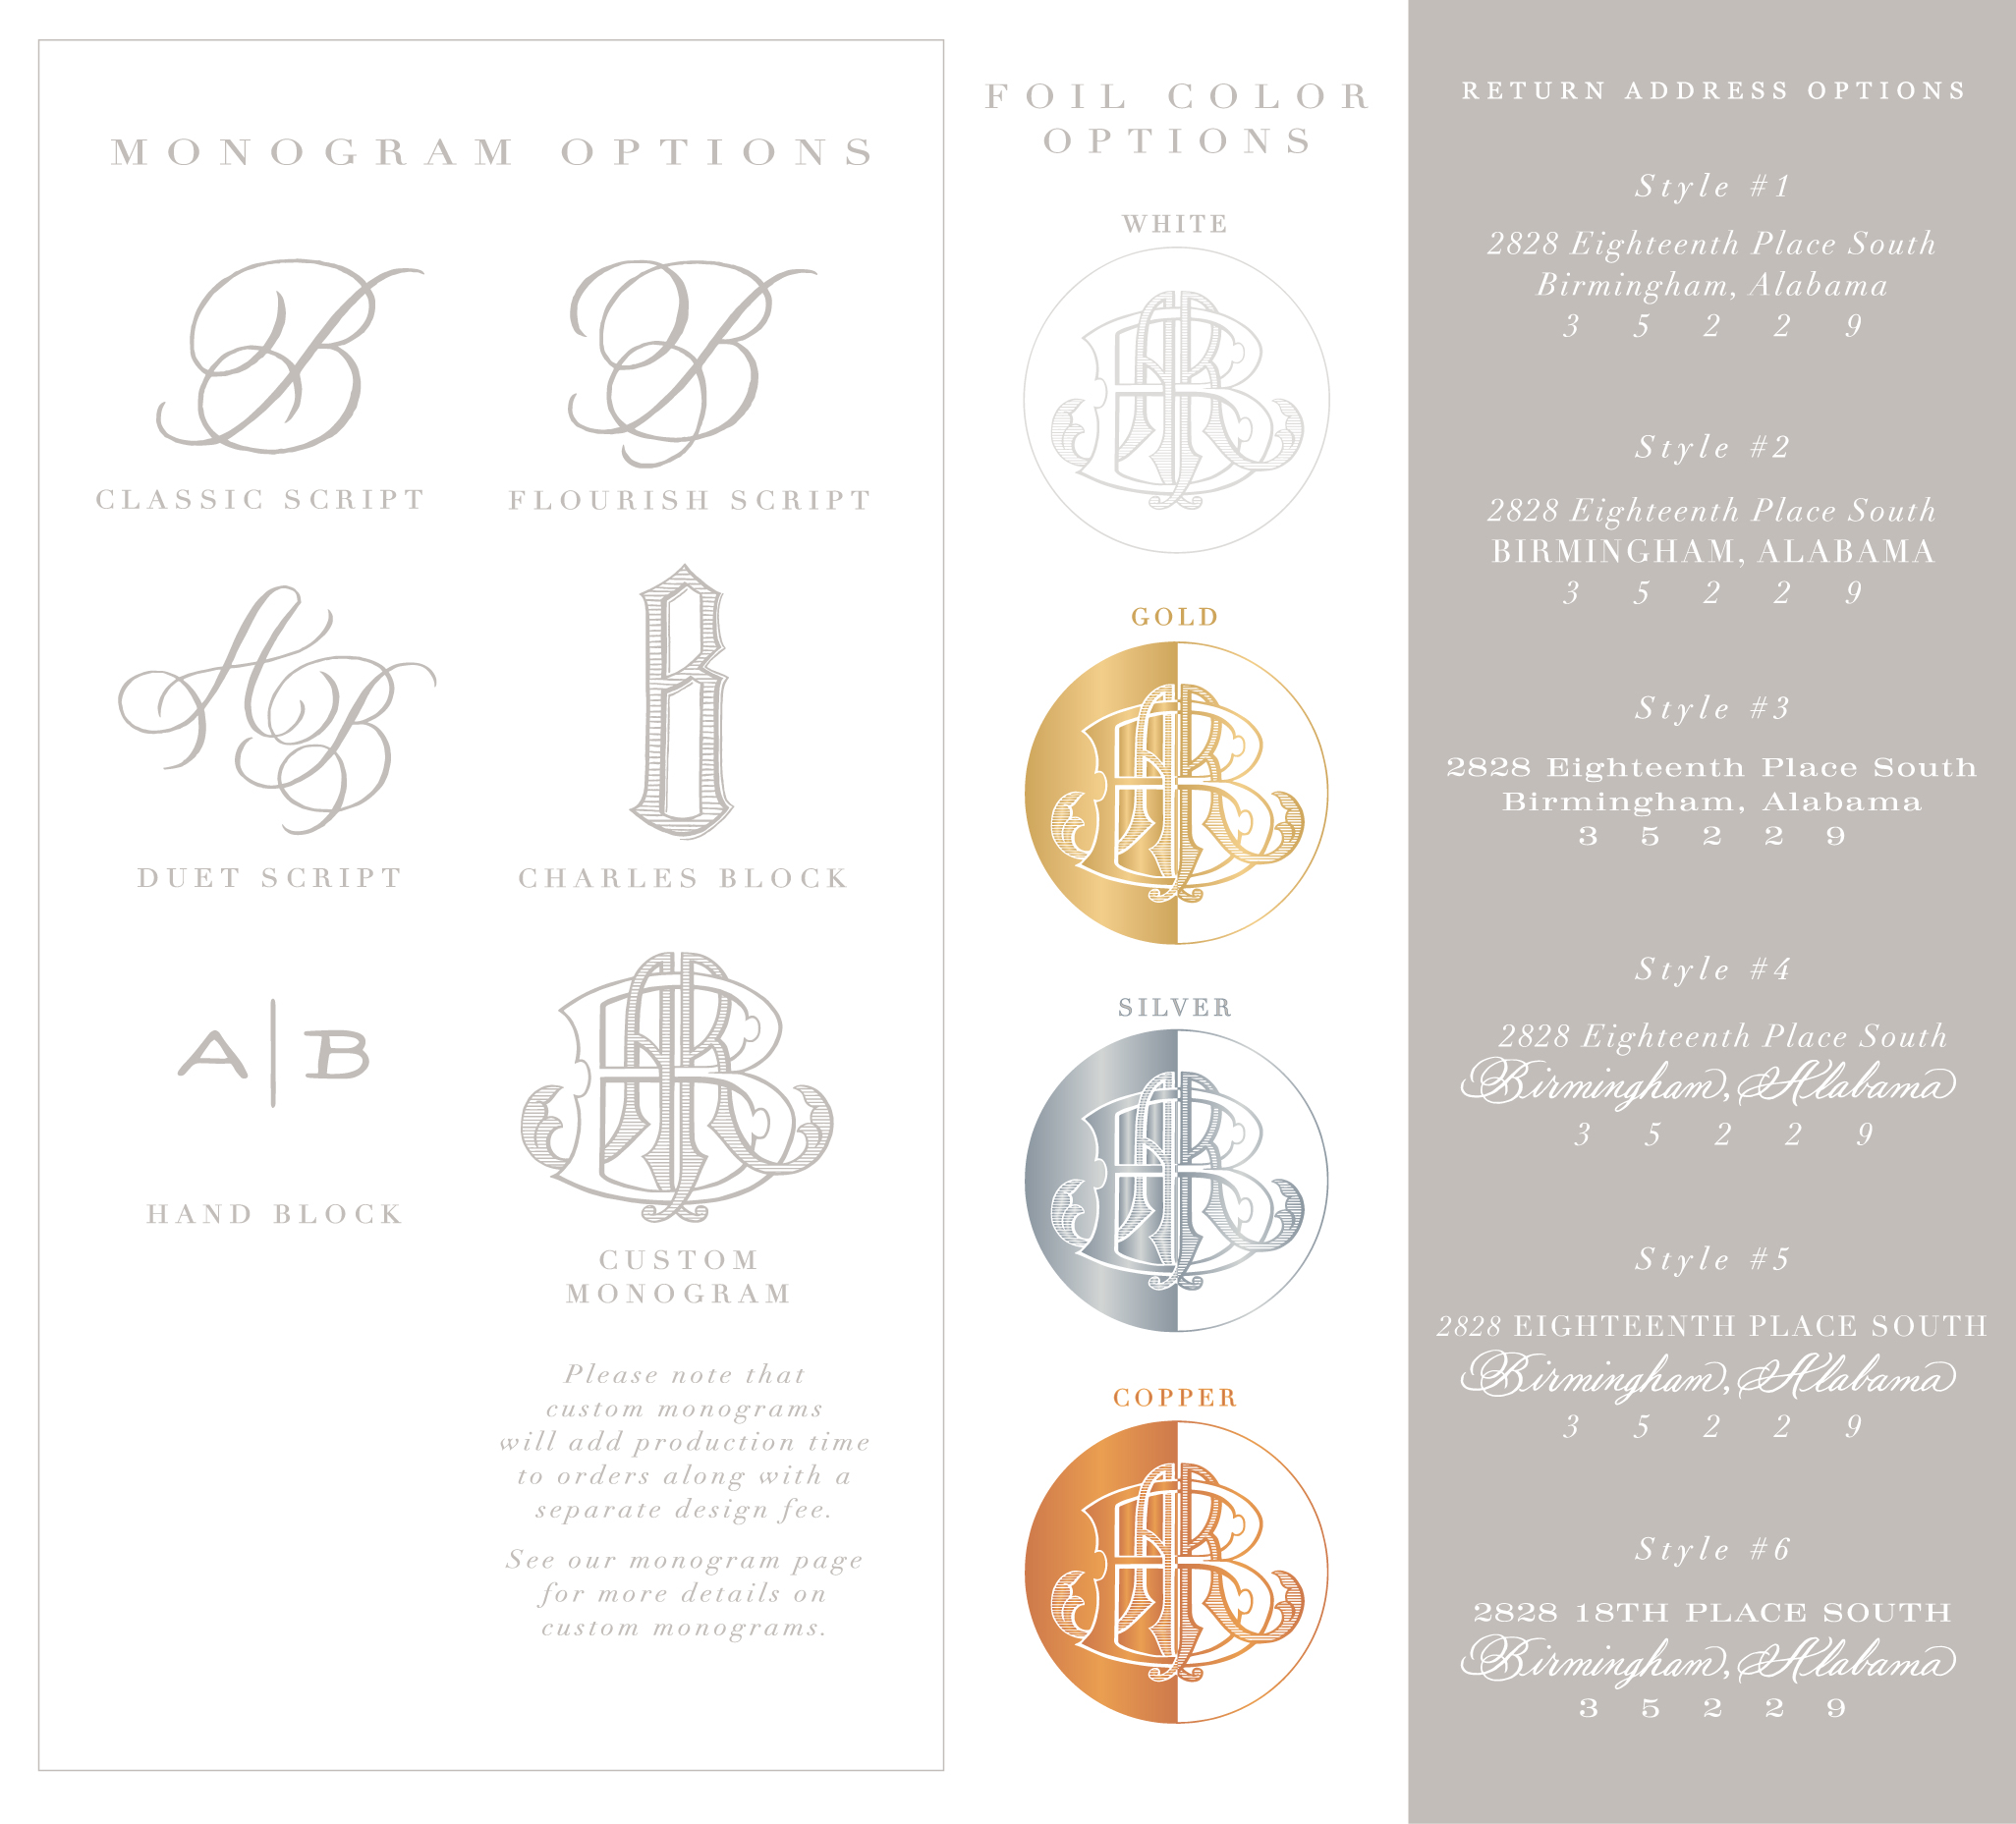 WHITE-Color-Stationery-Chart-#4.jpg